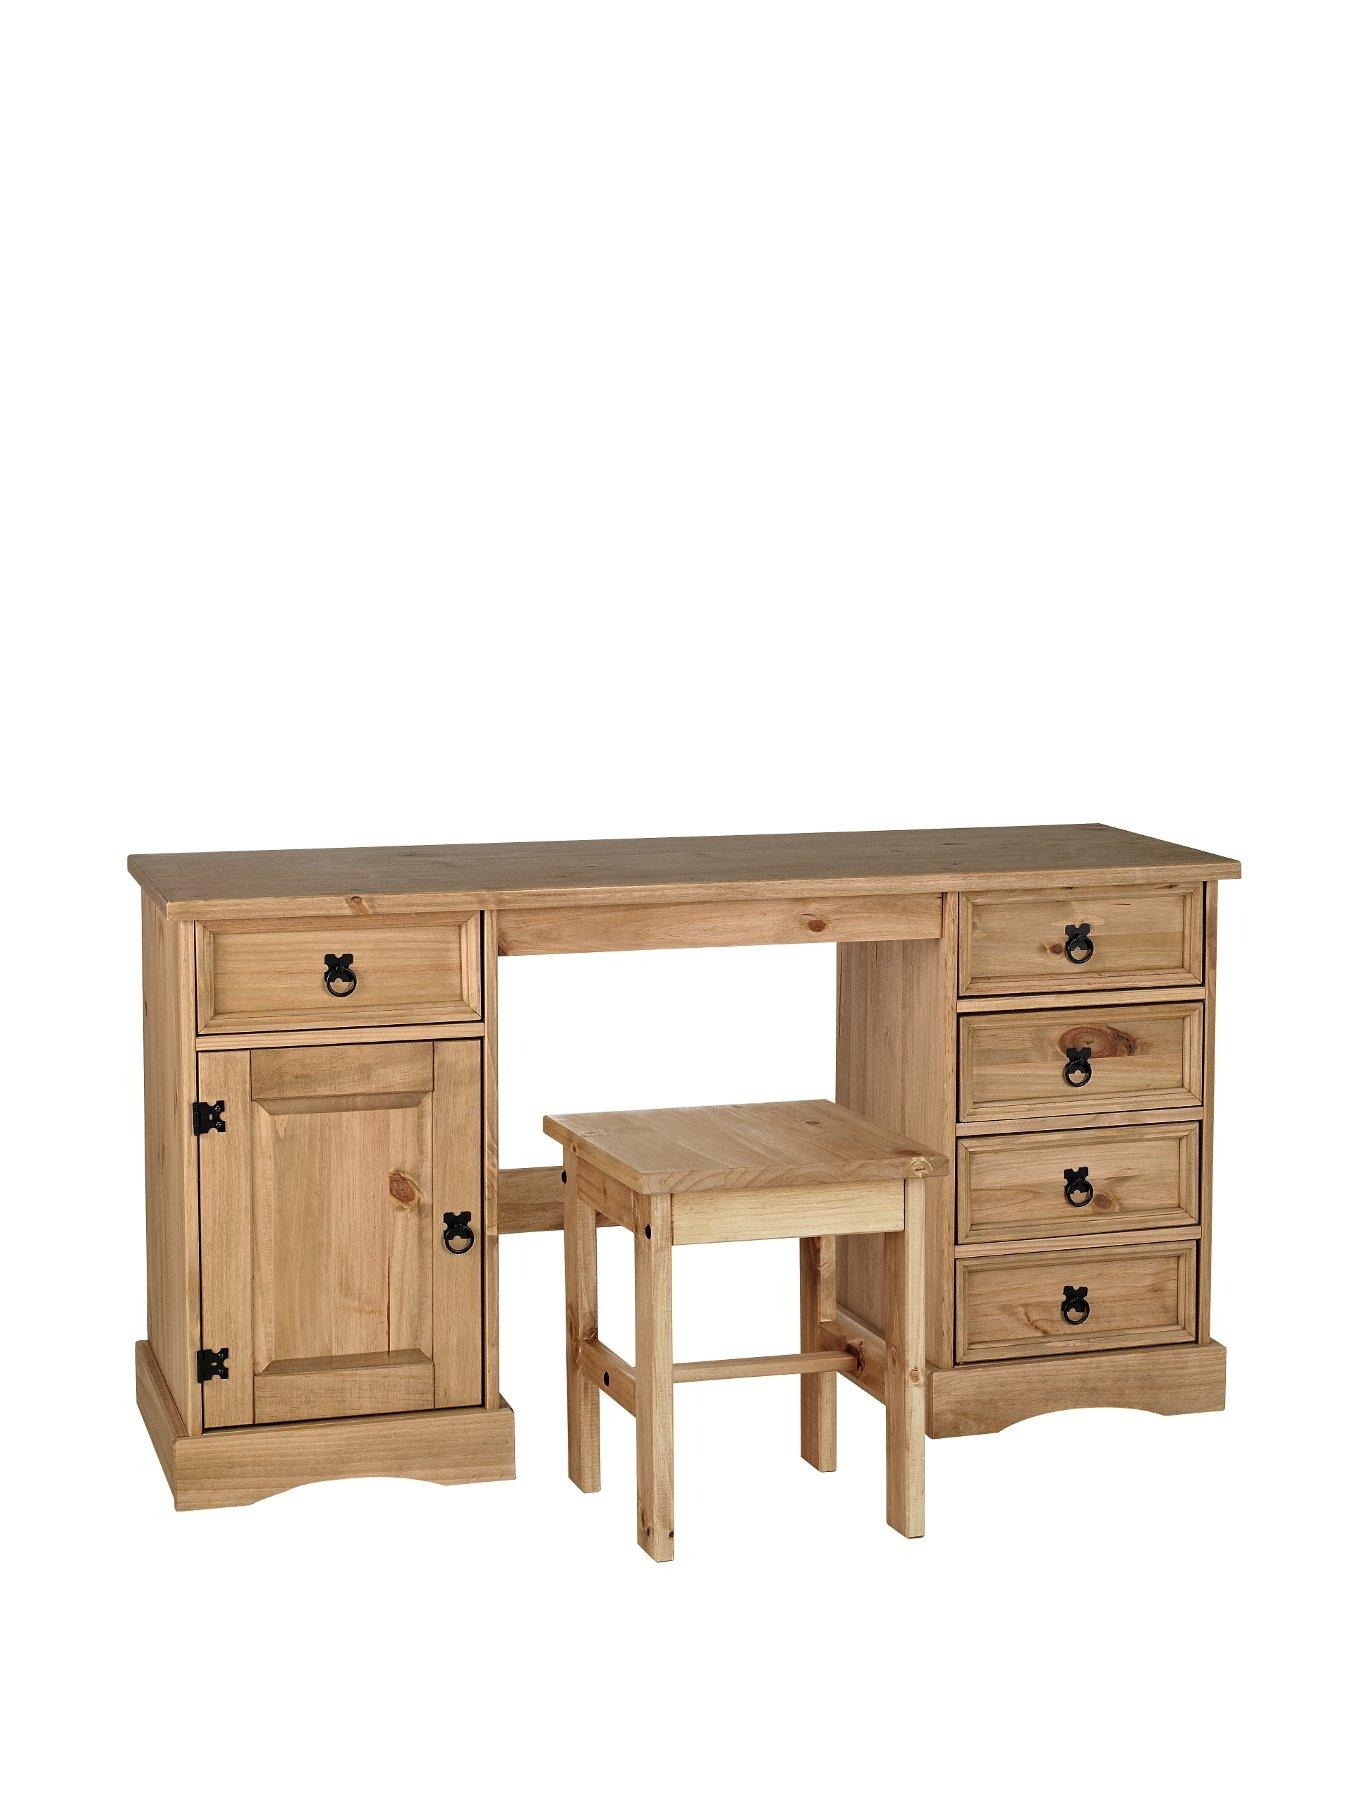 Pine Bedroom Stool Bedroom Dressing Tables 112 Scale Gorgeous Clothing Closet With